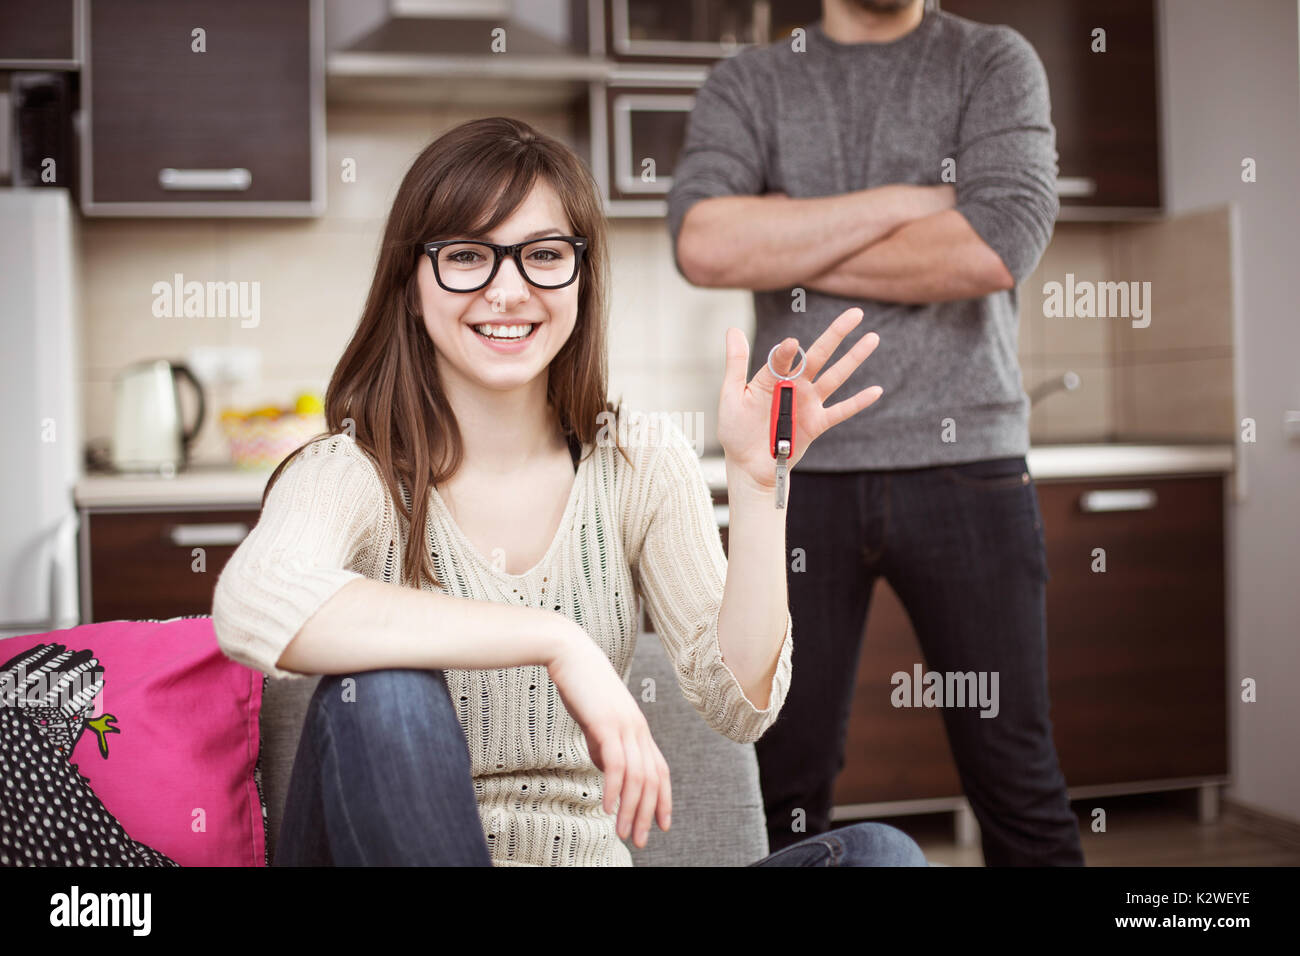 Cheerful smiling woman with car keys and a distrustful man standing behind her with crossed hands - Stock Image